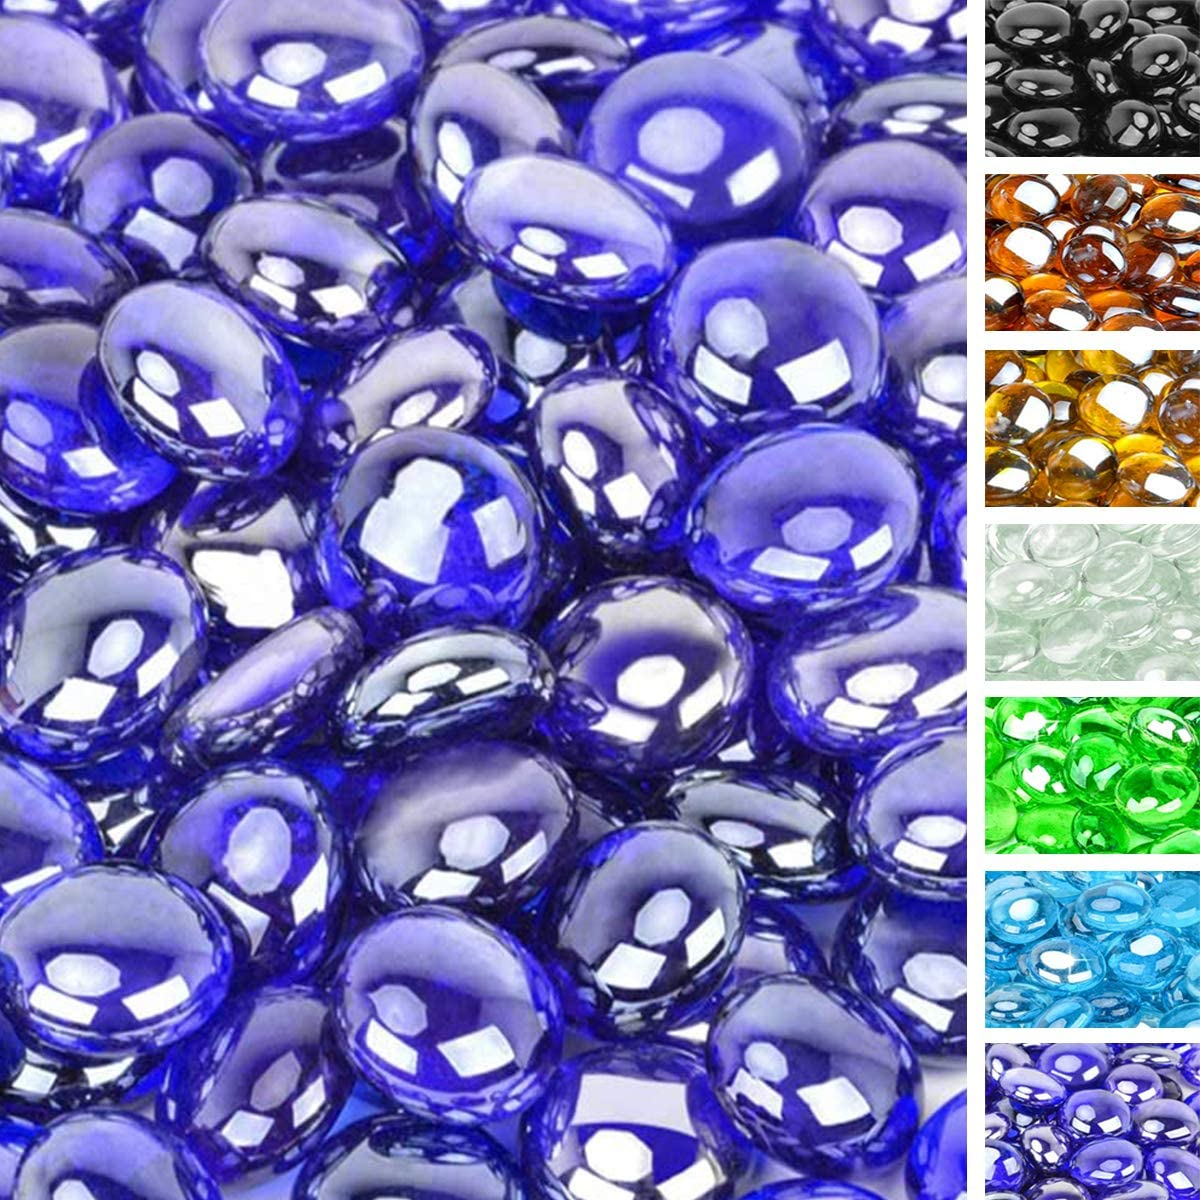 onlyfire 1/2 Inch Fire Glass Beads for Natural or Propane Fire Pit Fireplace and Landscaping, 10-Pound High Luster Royal Cobalt Blue